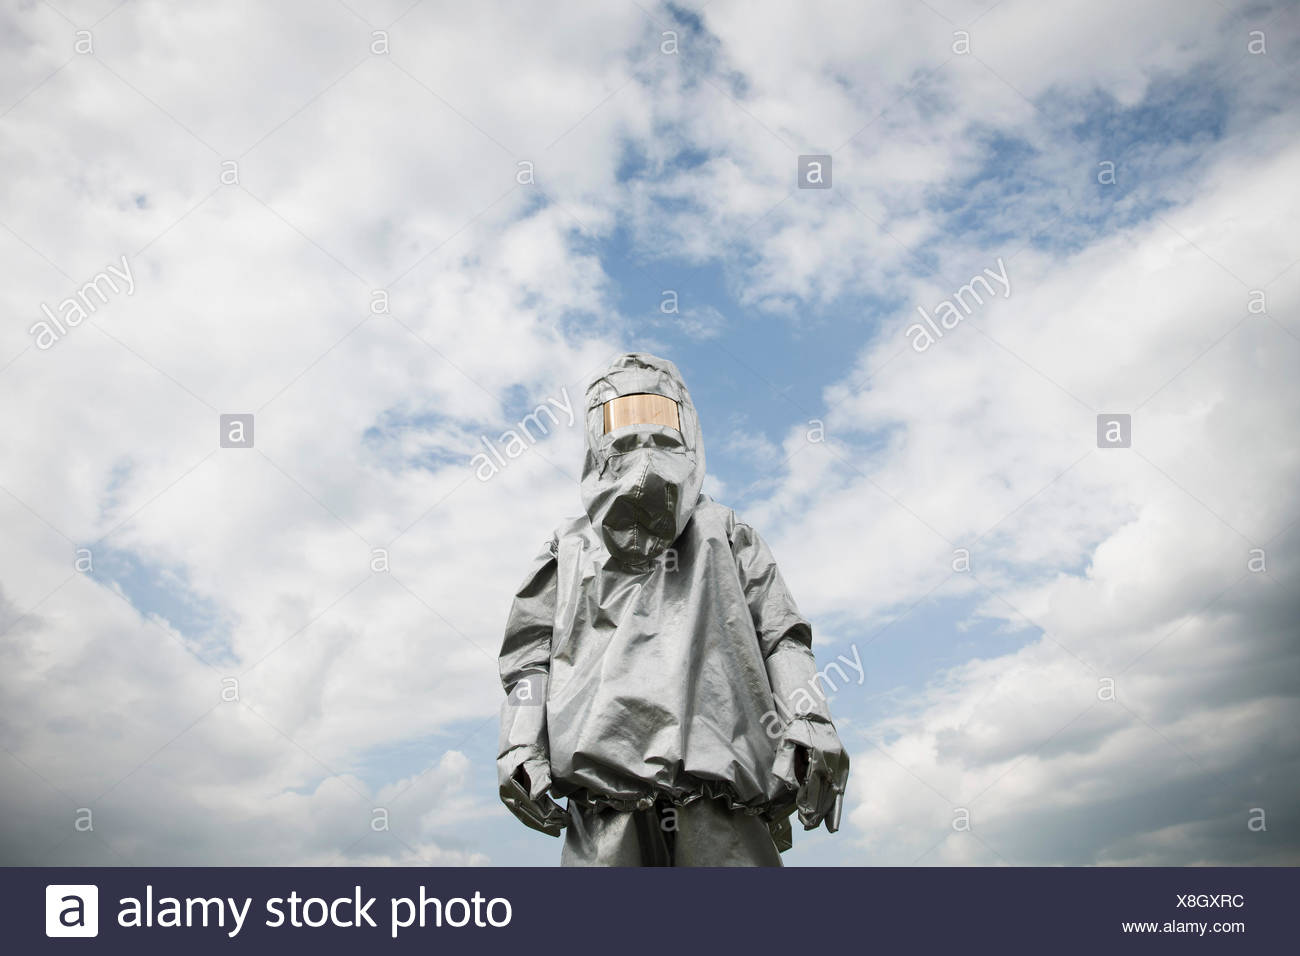 A person in a radiation protective suit standing against a cloudy sky - Stock Image